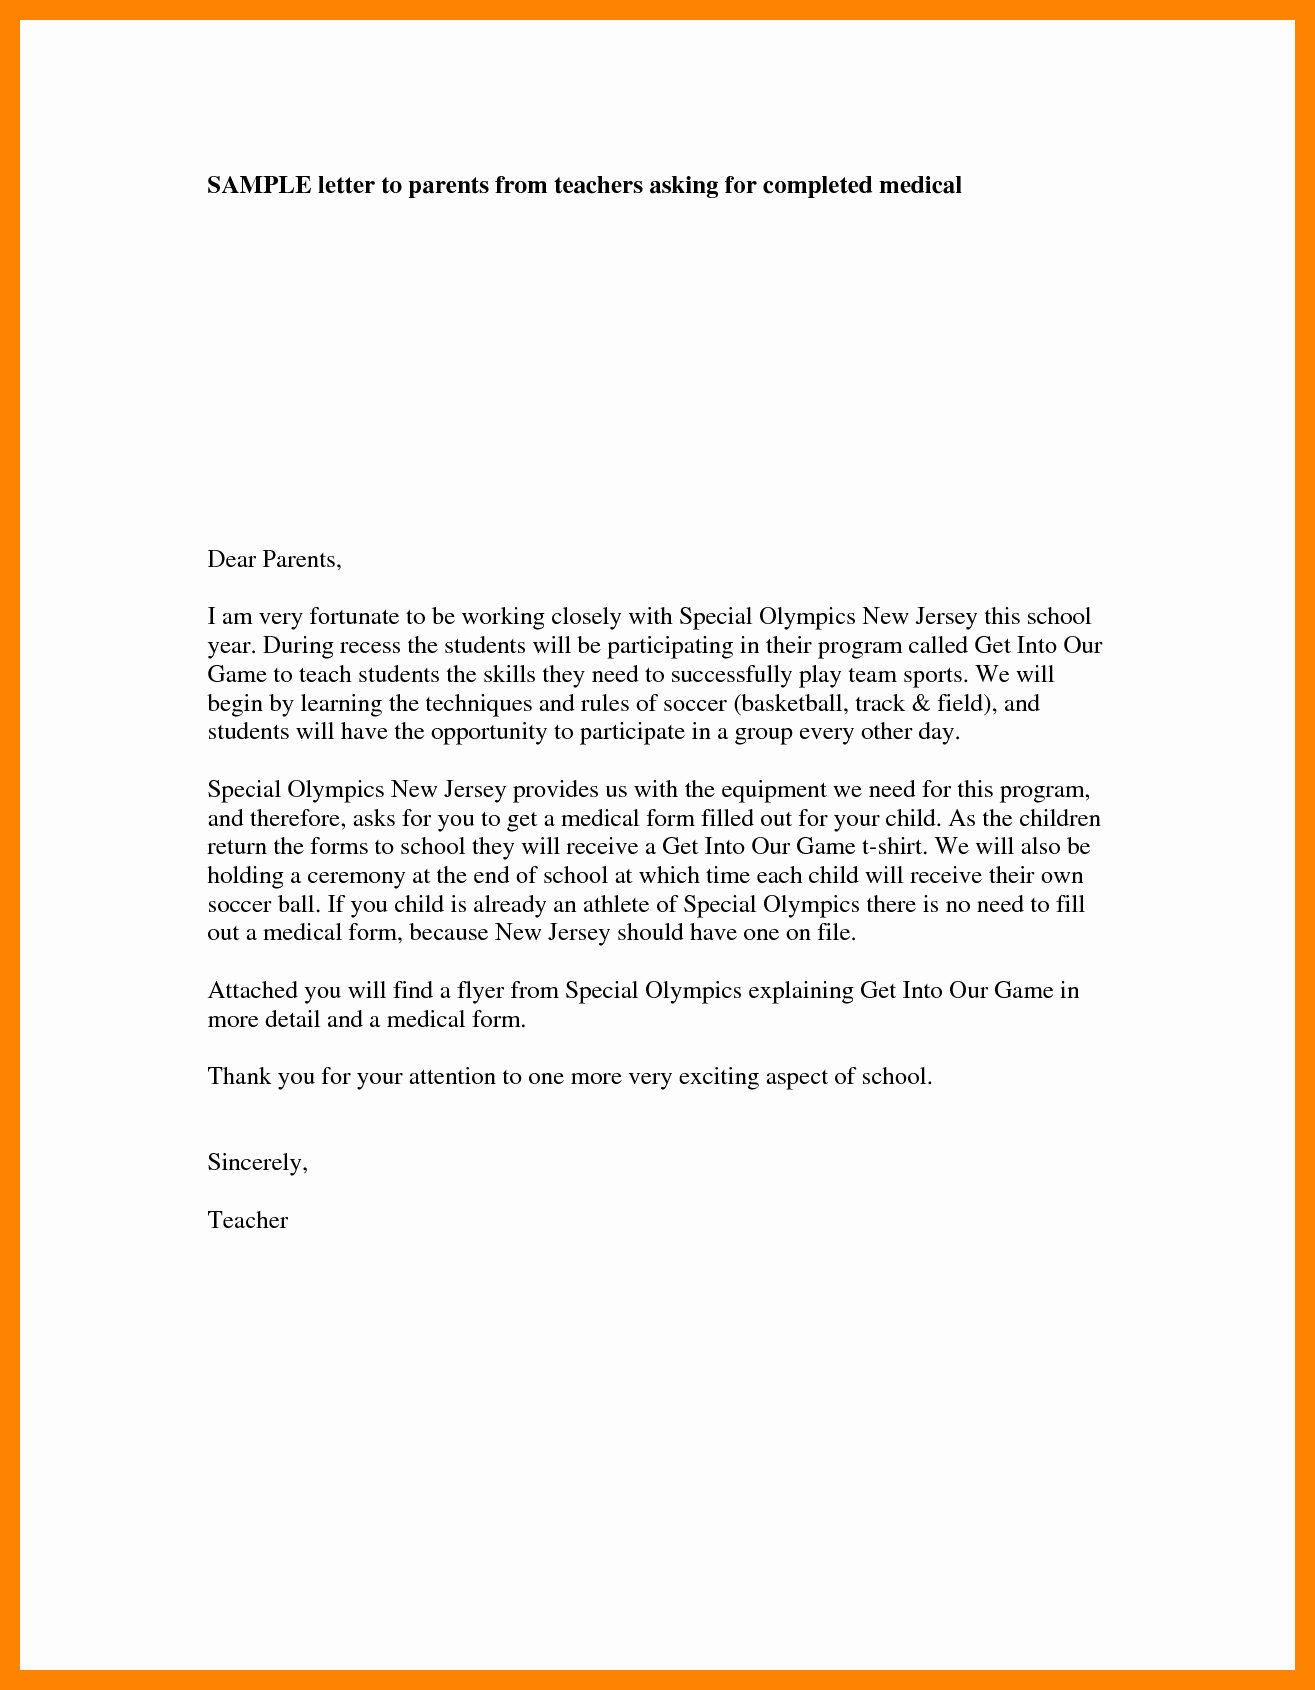 Letter to Parents Template Inspirational 4 Teacher Introduction Letter to Parents Template